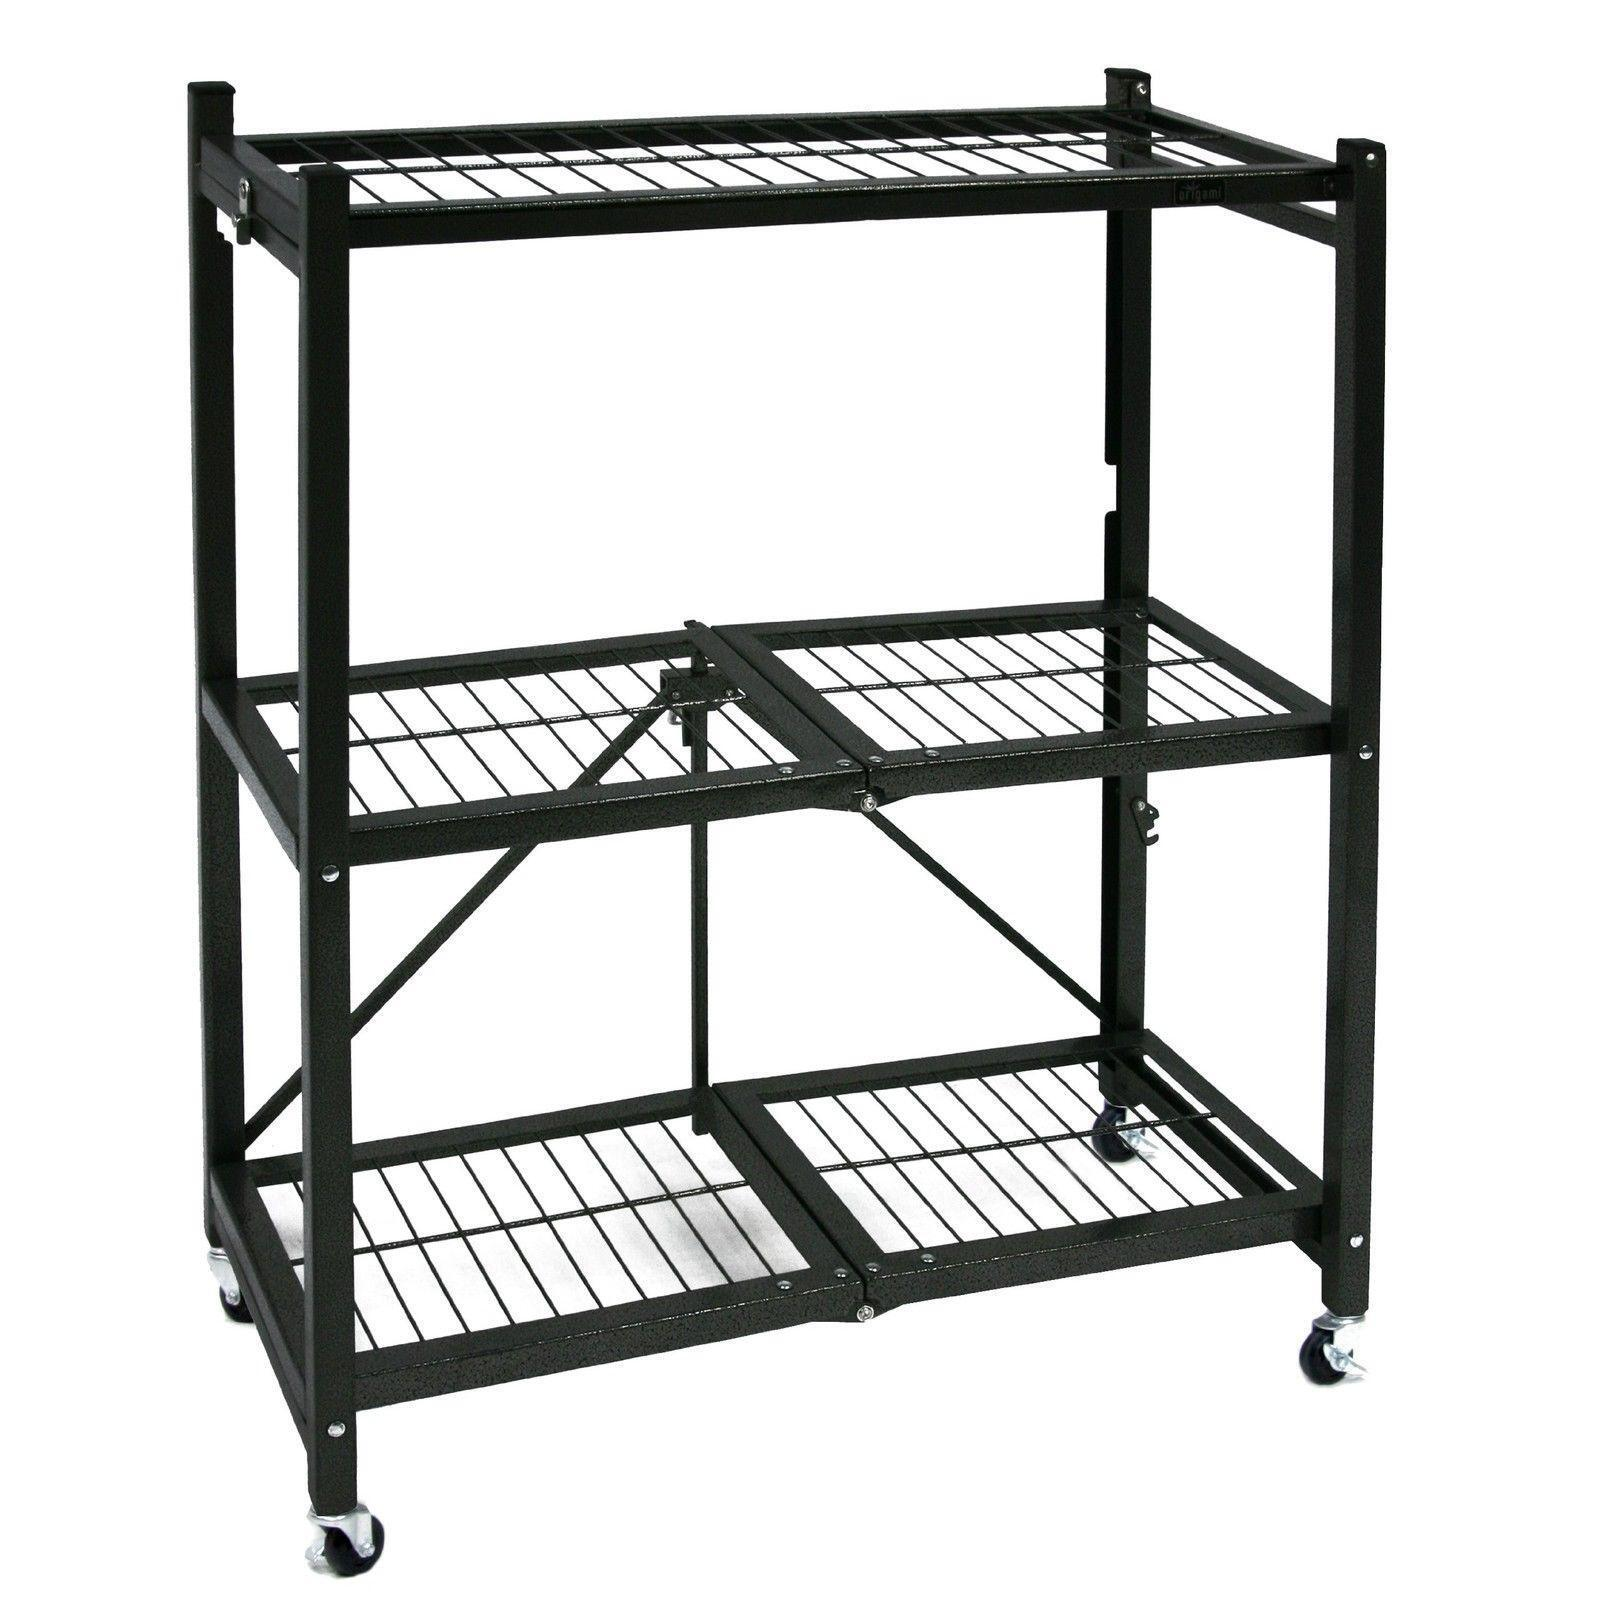 Origami General Purpose Steel Storage Rack With Wheels 3shelf Small ...